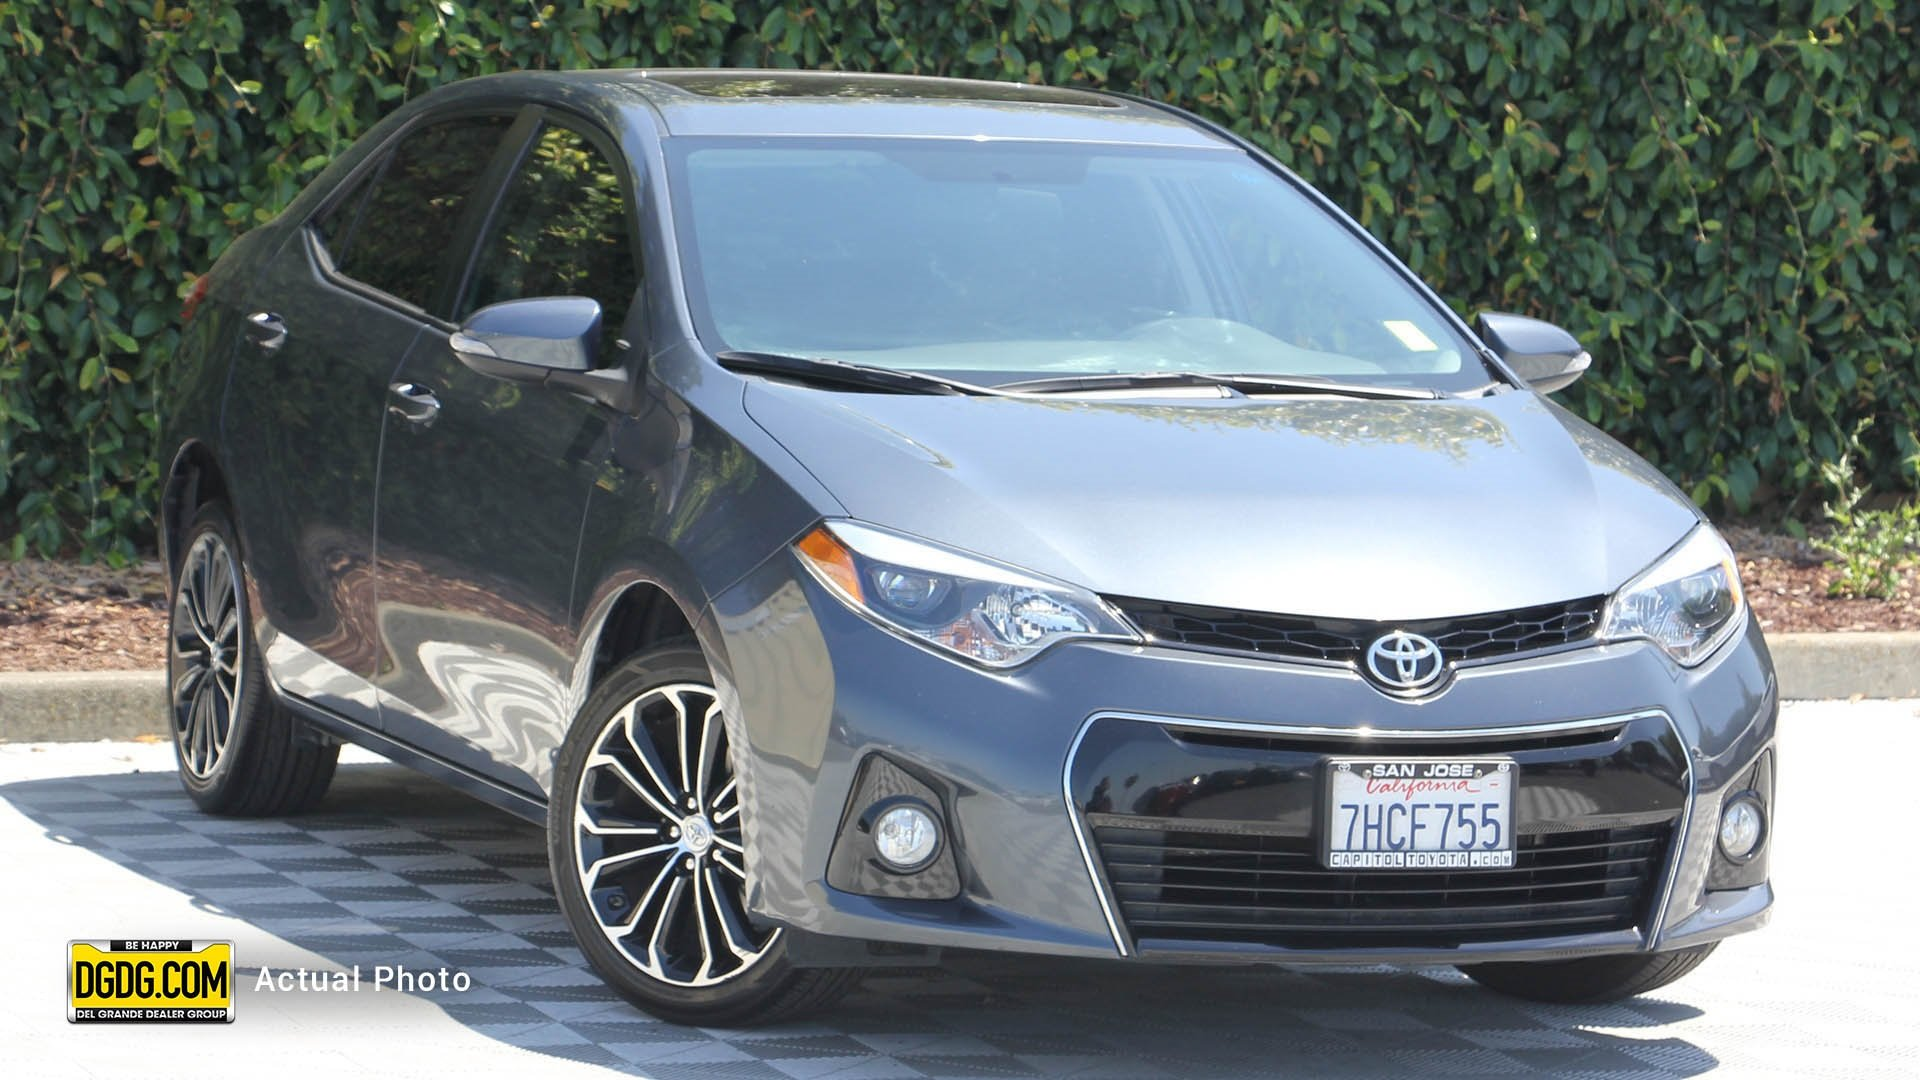 San Jose Toyota >> Pre Owned 2015 Toyota Corolla S Plus 4d Sedan In San Jose H26179a